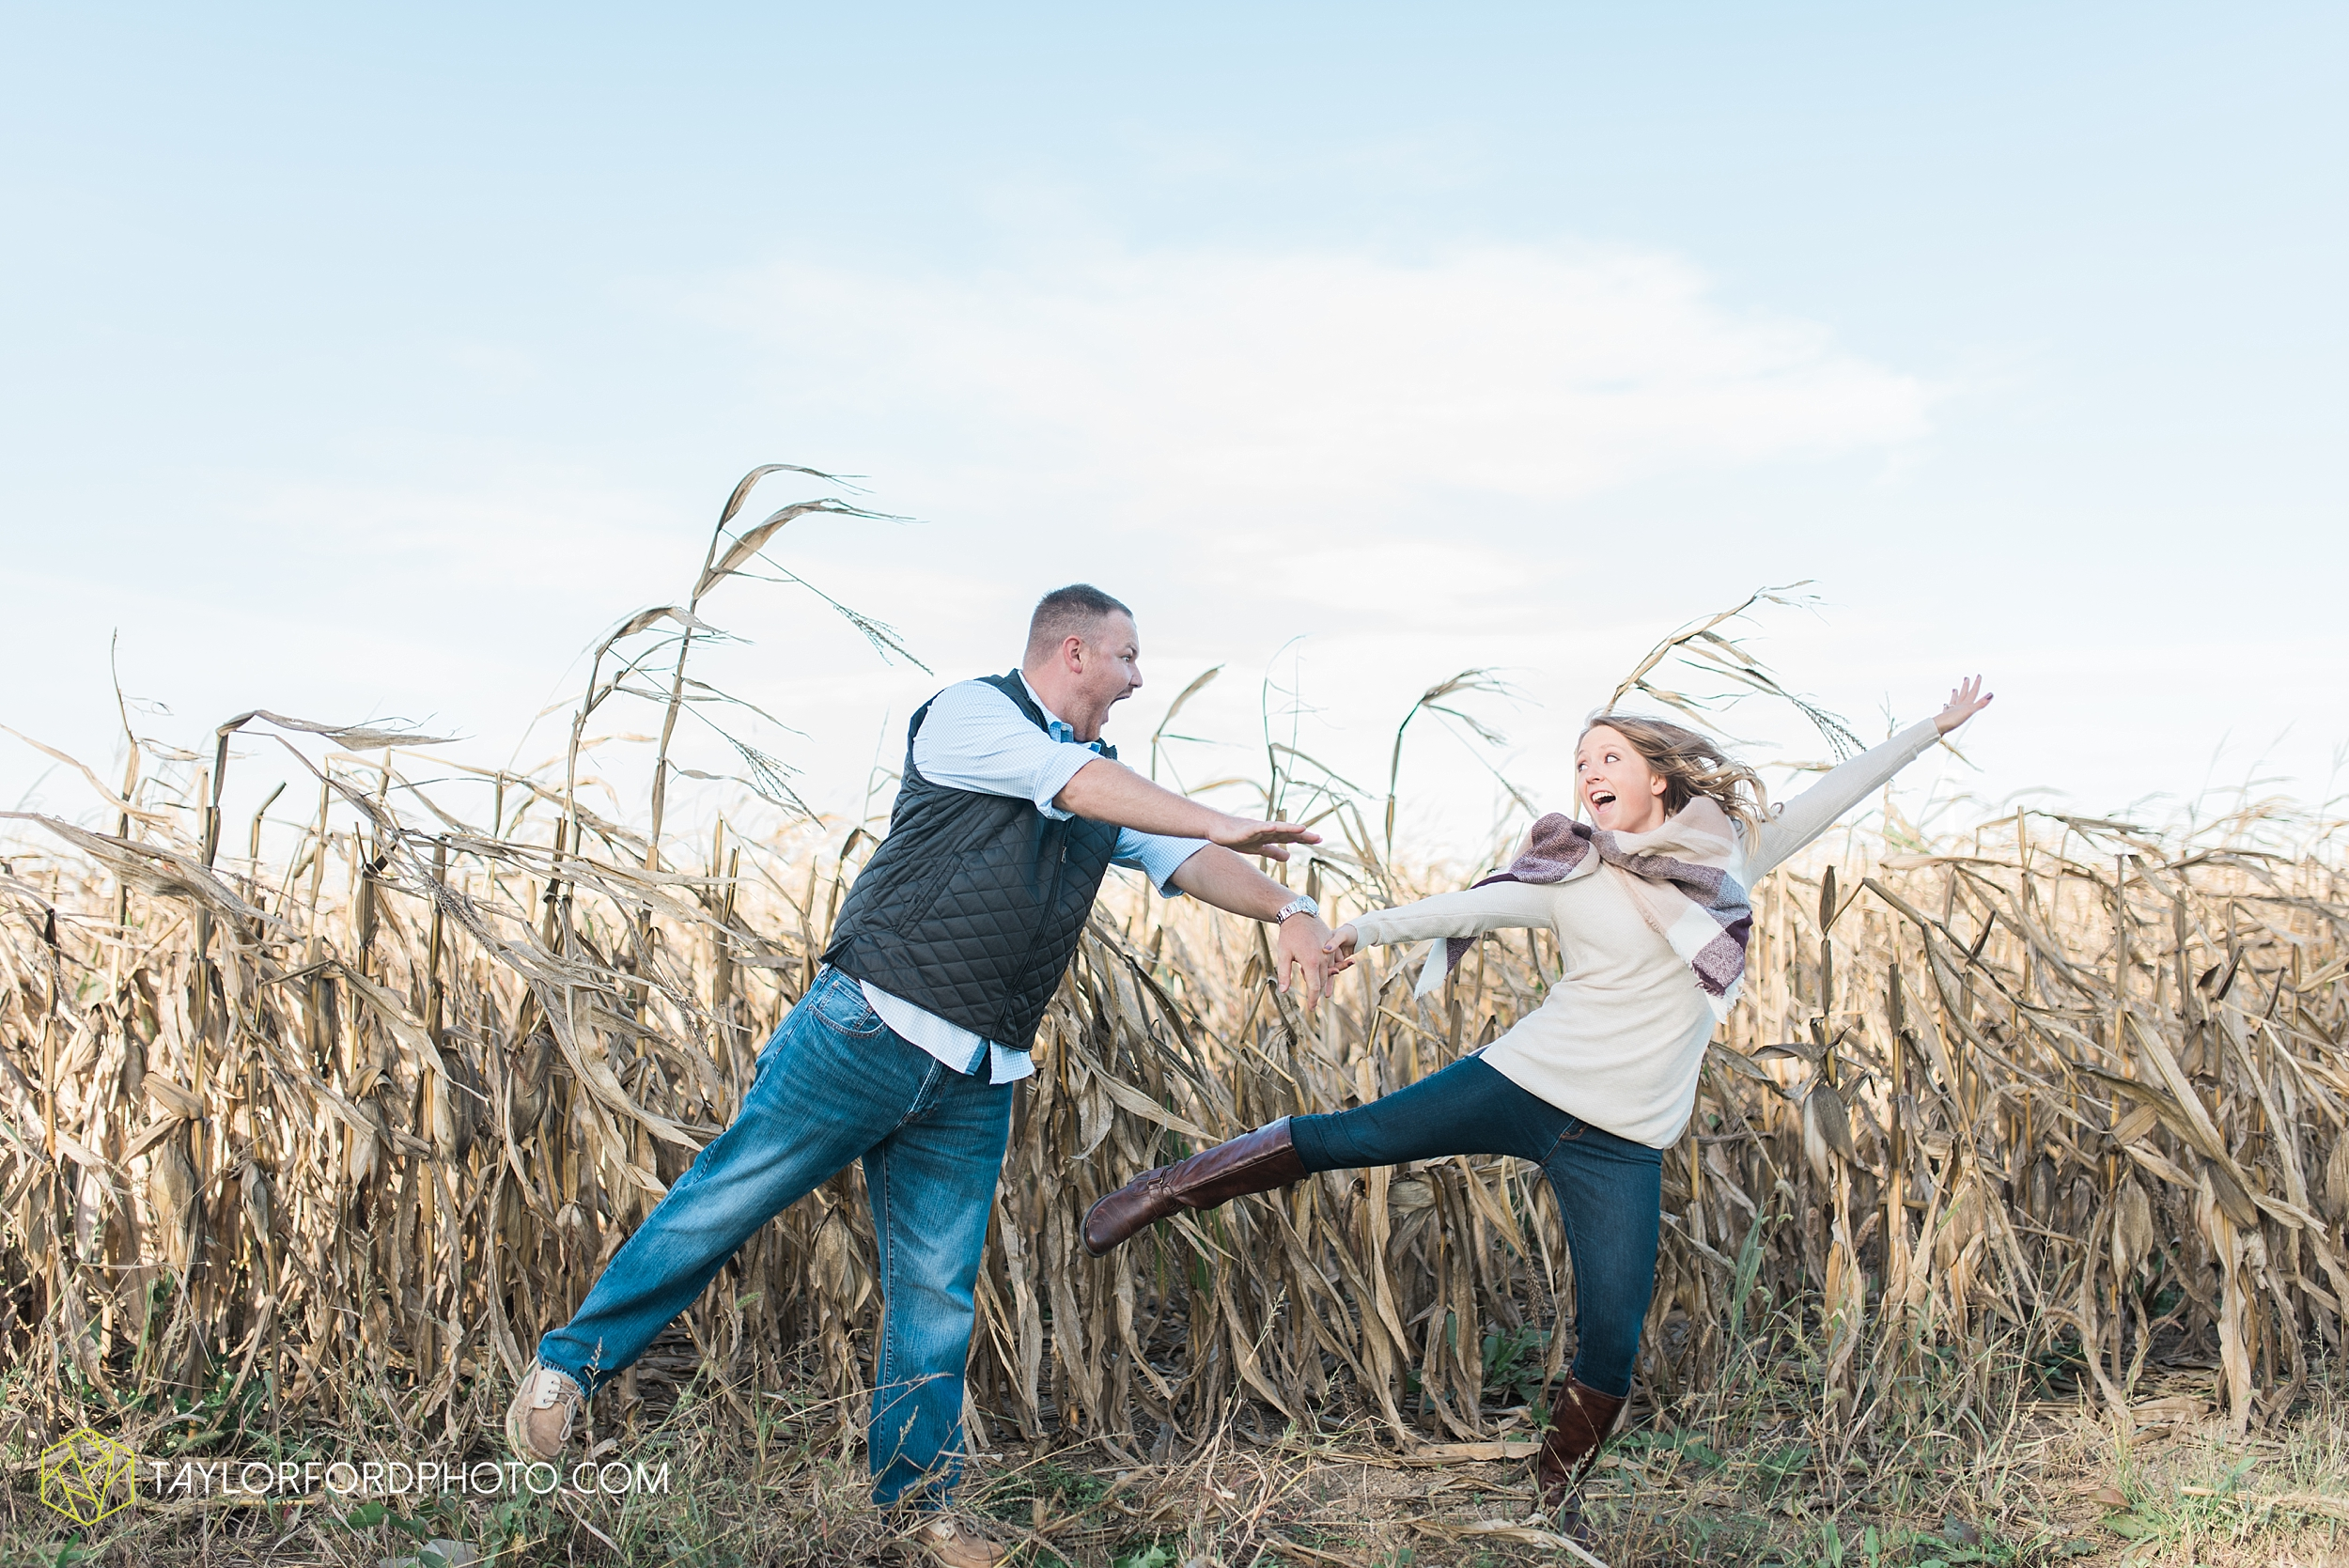 van-wert-ohio-engagement-wedding-photographer-Taylor-Ford-Photography-fall-farm-nature_4074.jpg